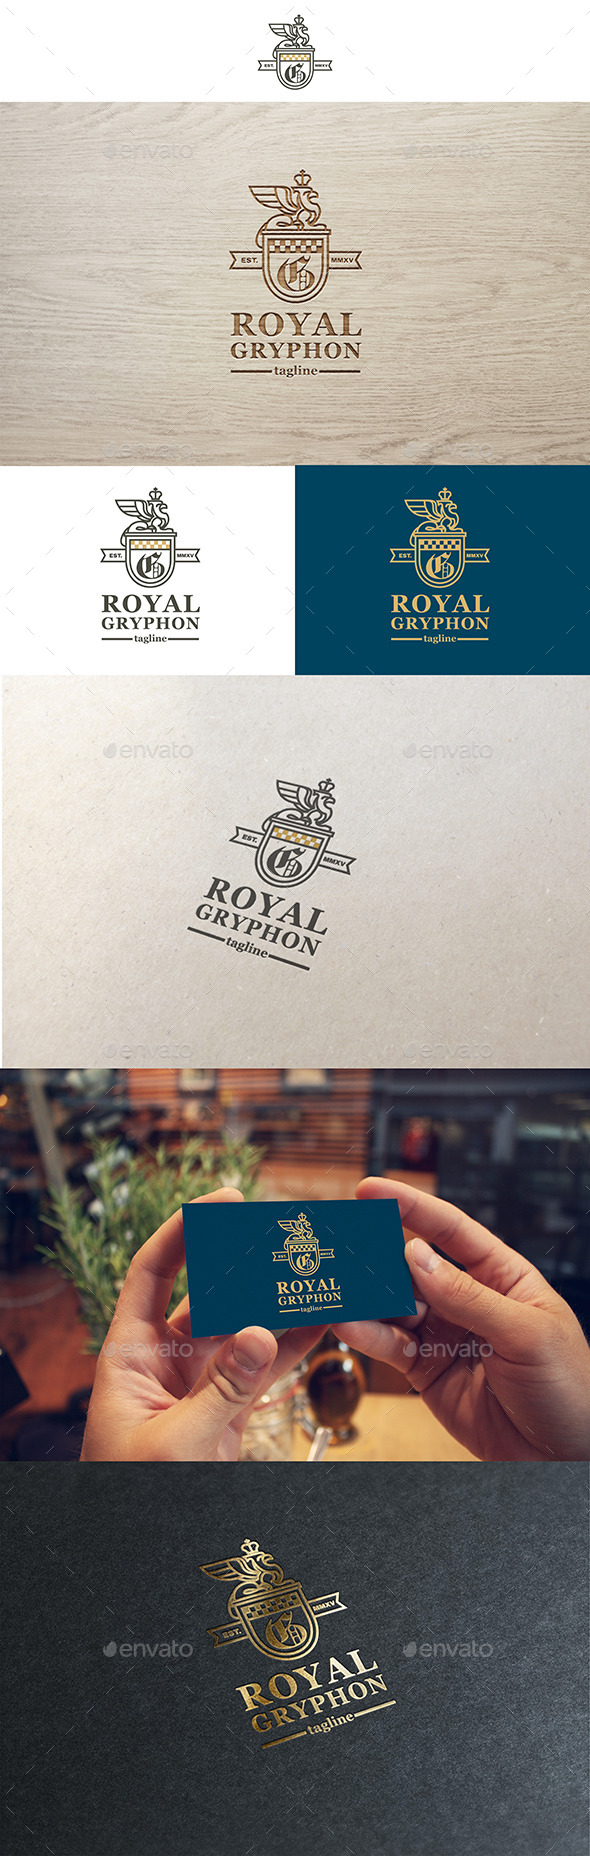 Royal Gryphon Logo